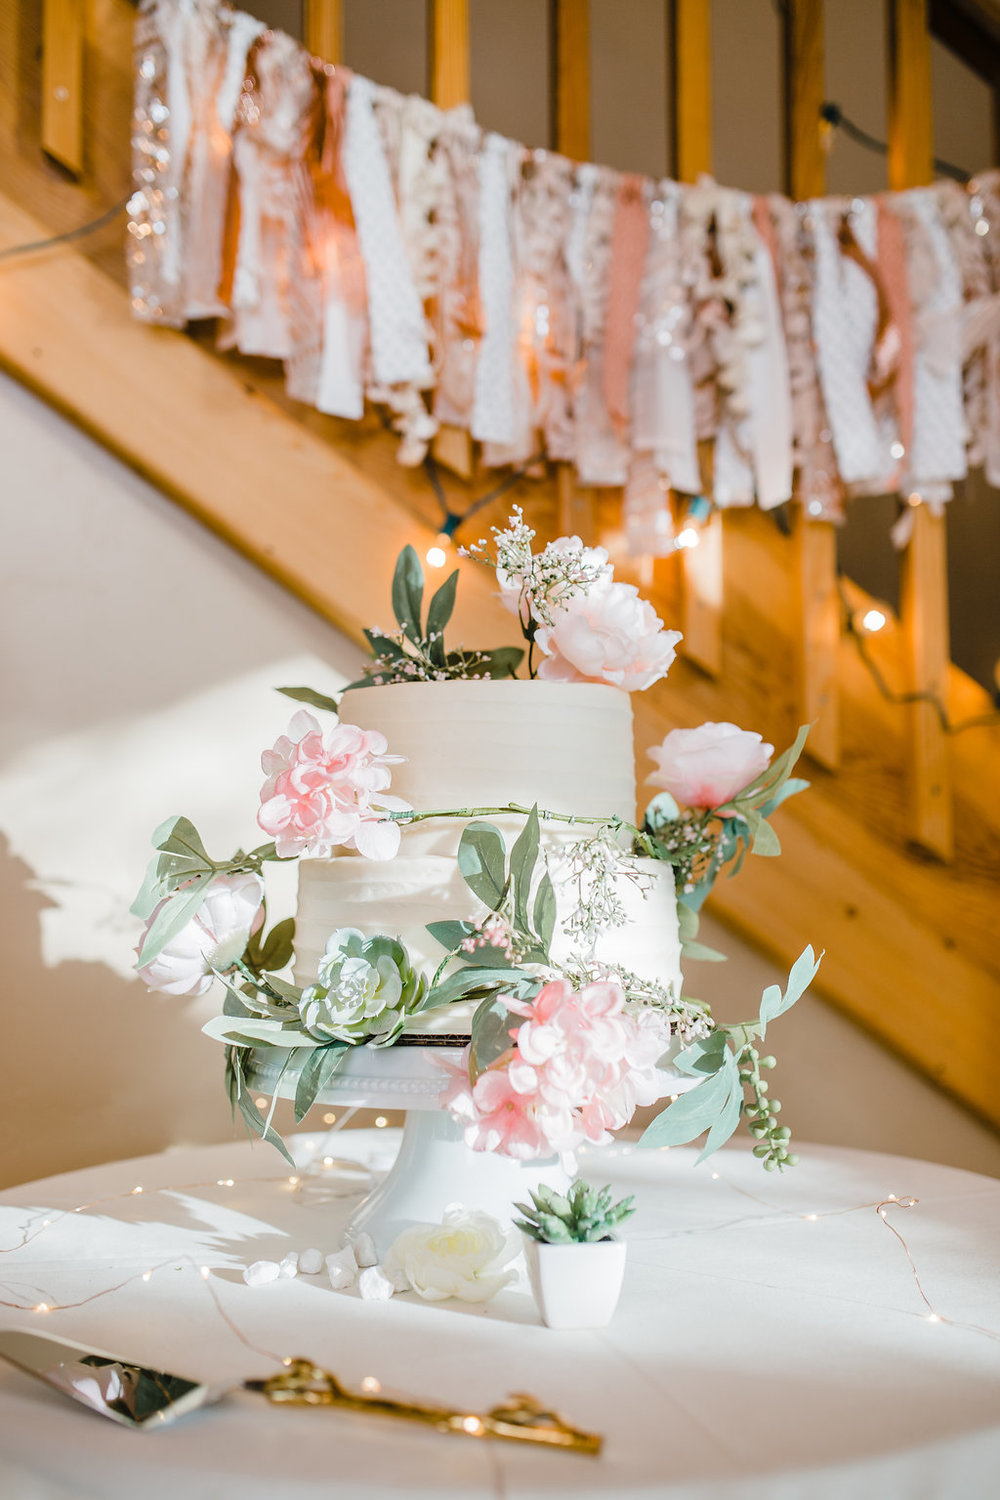 reception decorations wedding day photography details shot at the reception florals photographer northern utah